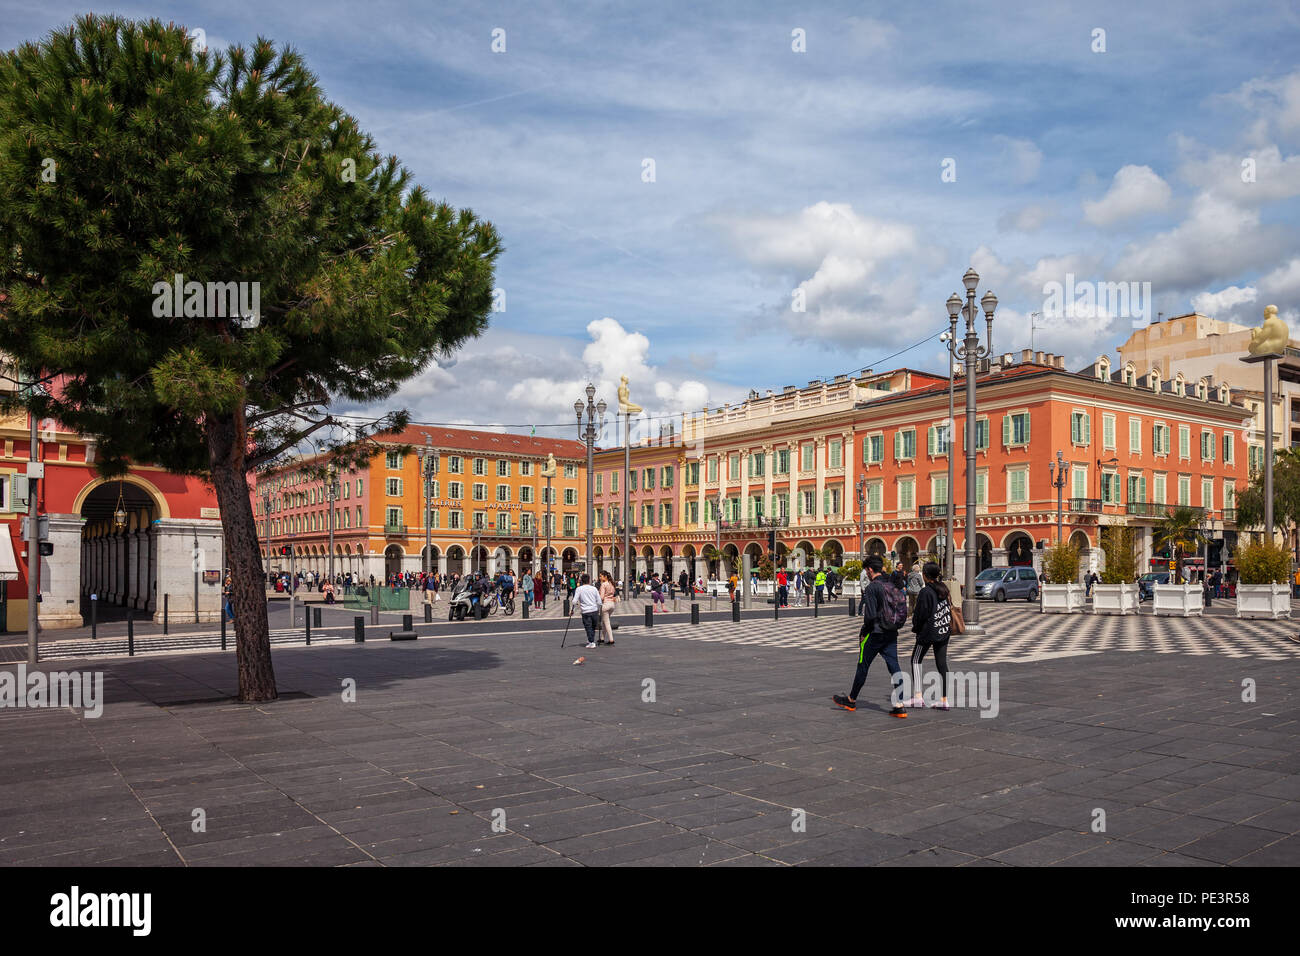 France, city of Nice, Place Massena main square in the city center Stock Photo